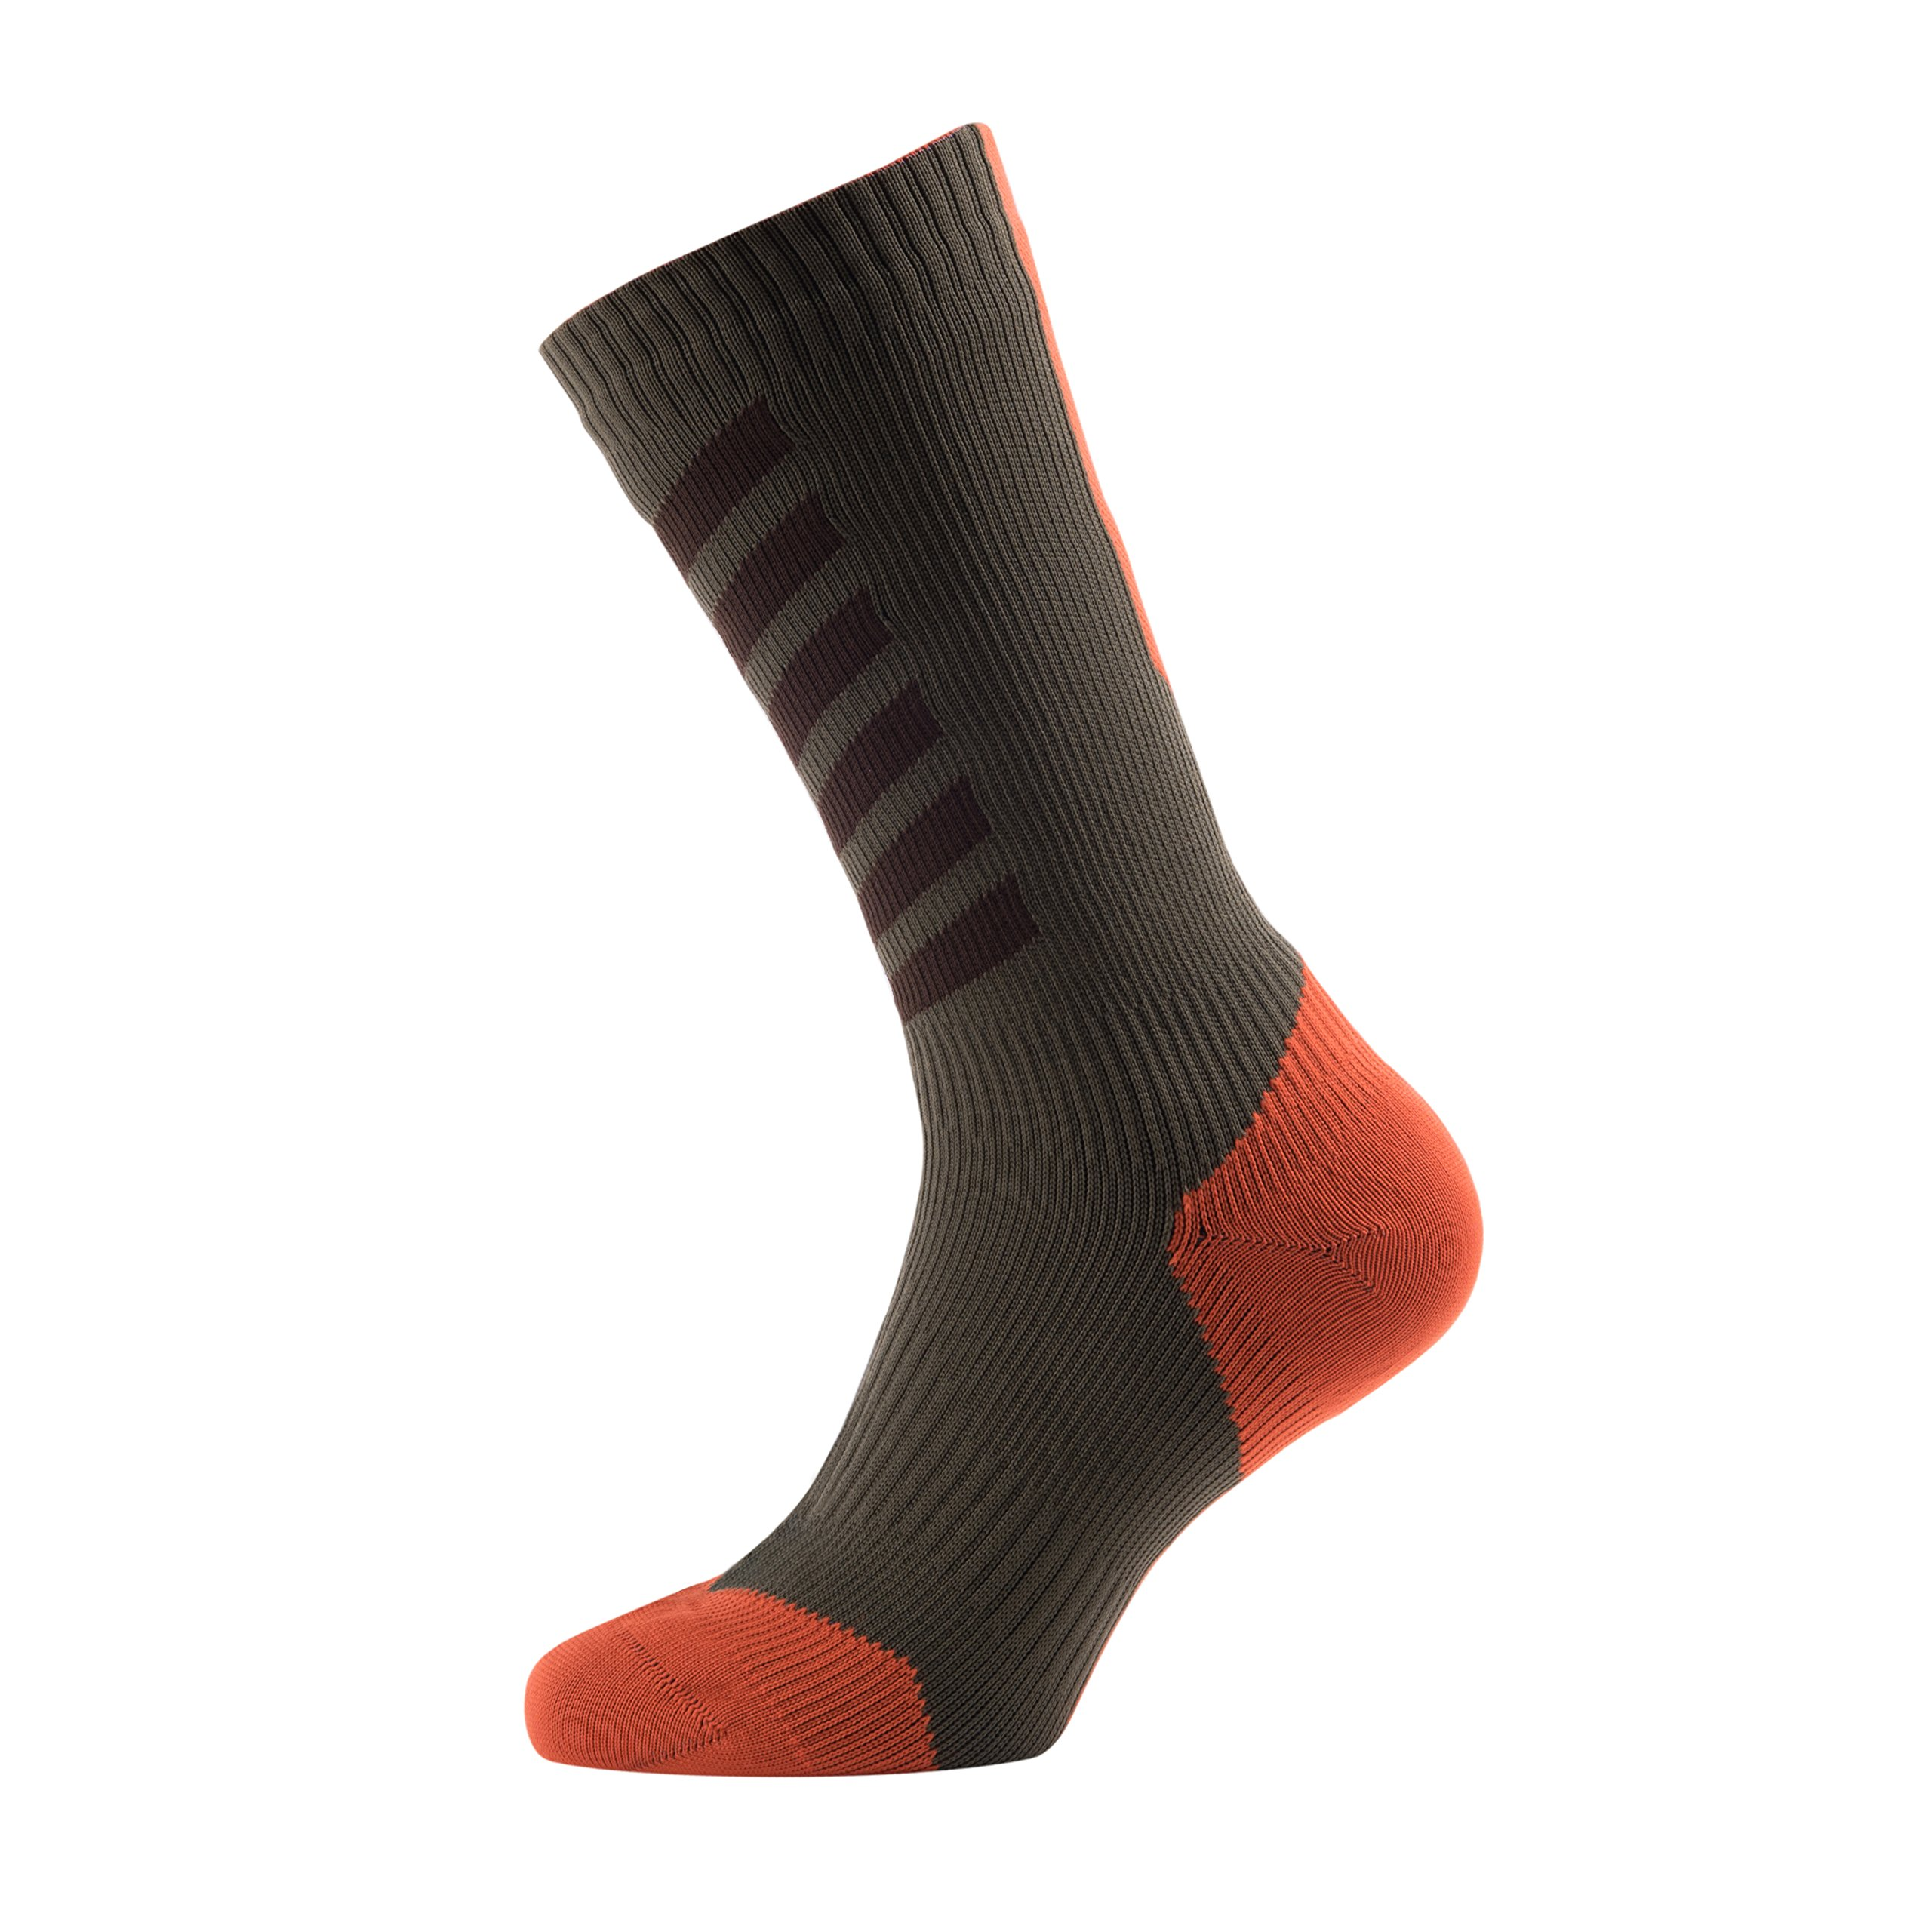 SEALSKINZ MTB Mid Mid Socks with Hydrostop, Small - DK Olive/Mud/Orange. With a Helicase brand sock ring by SEALSKINZ